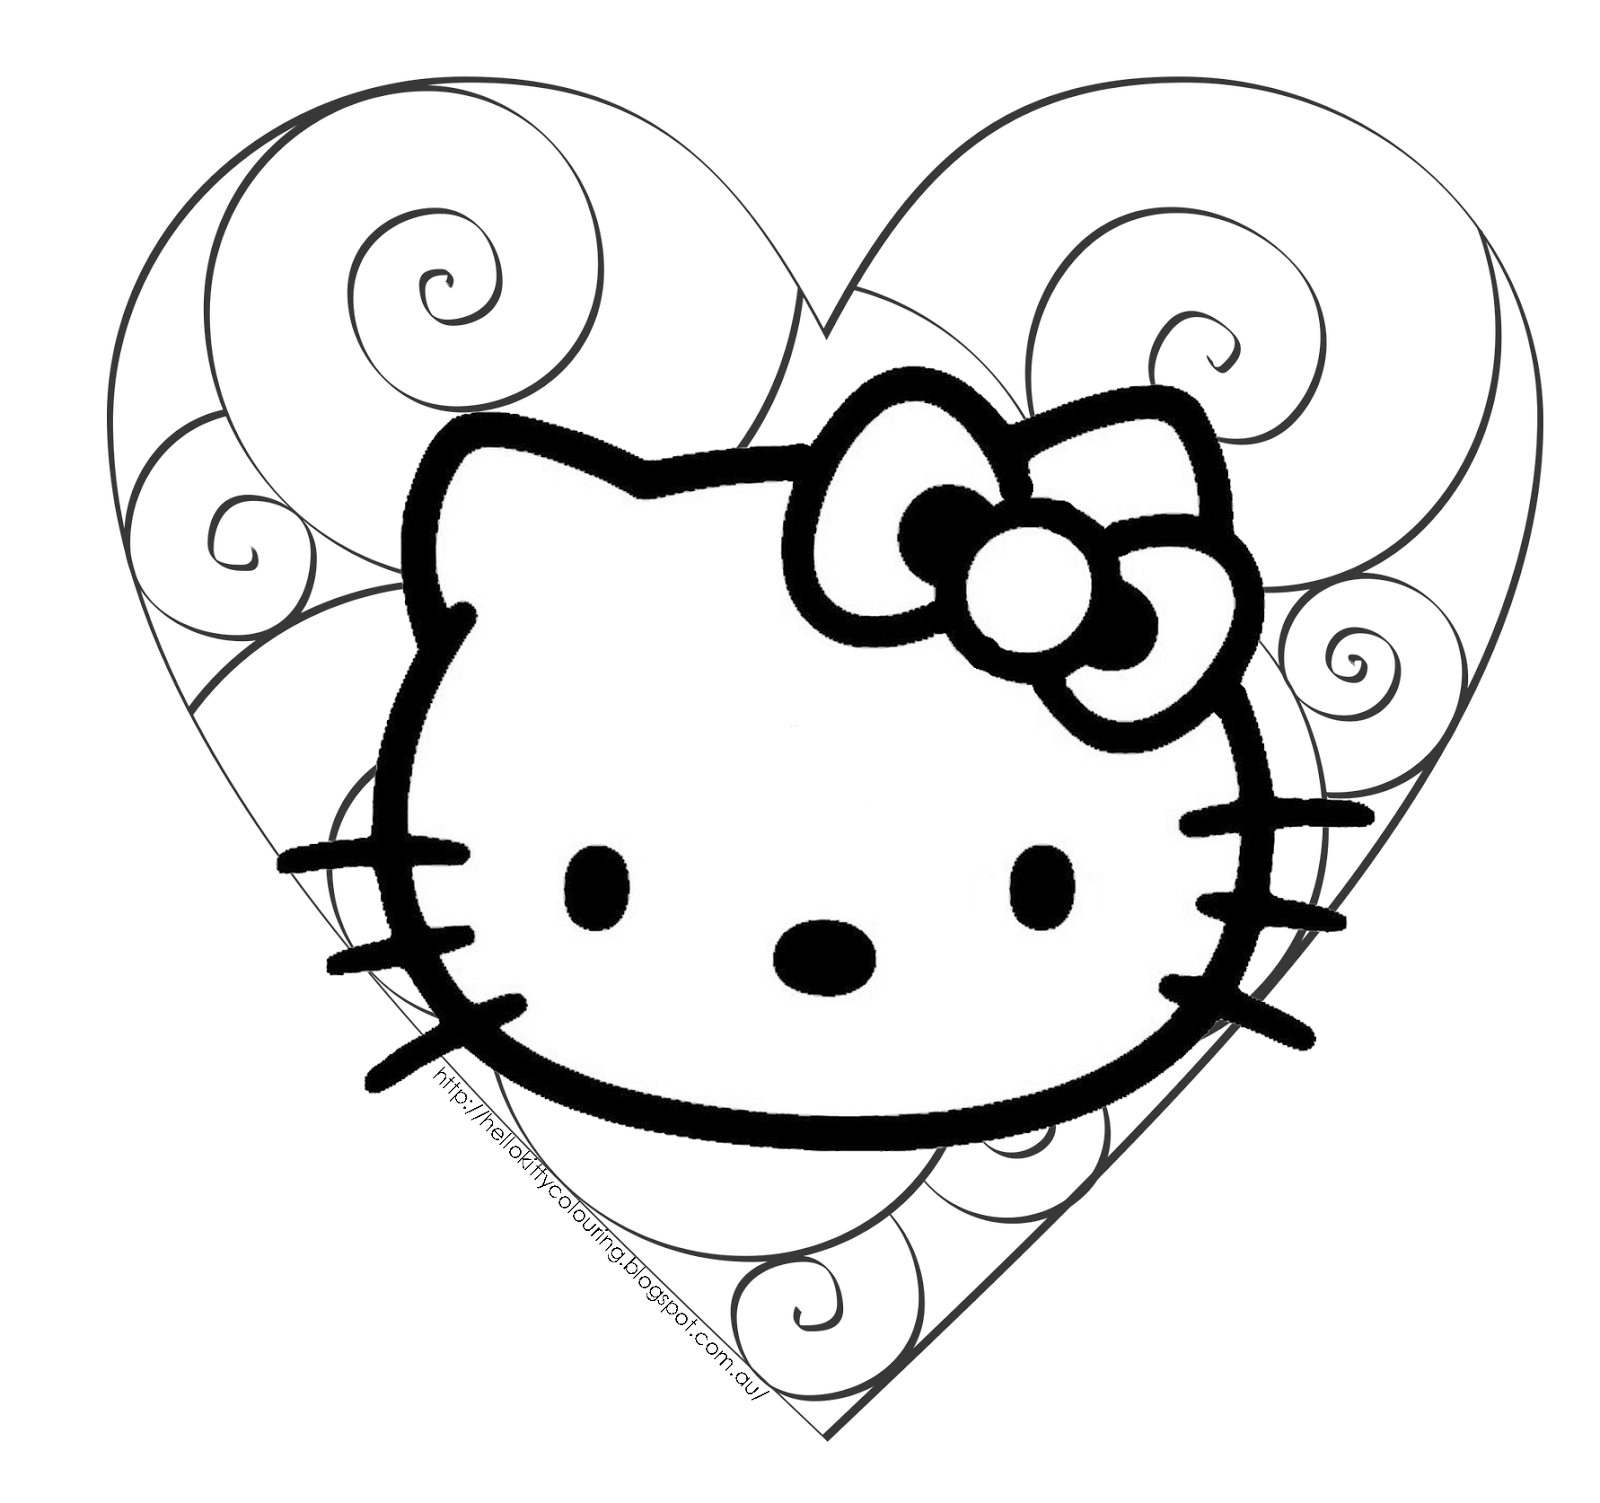 princess hello kitty coloring pages hello kitty hello kitty princess coloring pages big kitty coloring princess pages hello